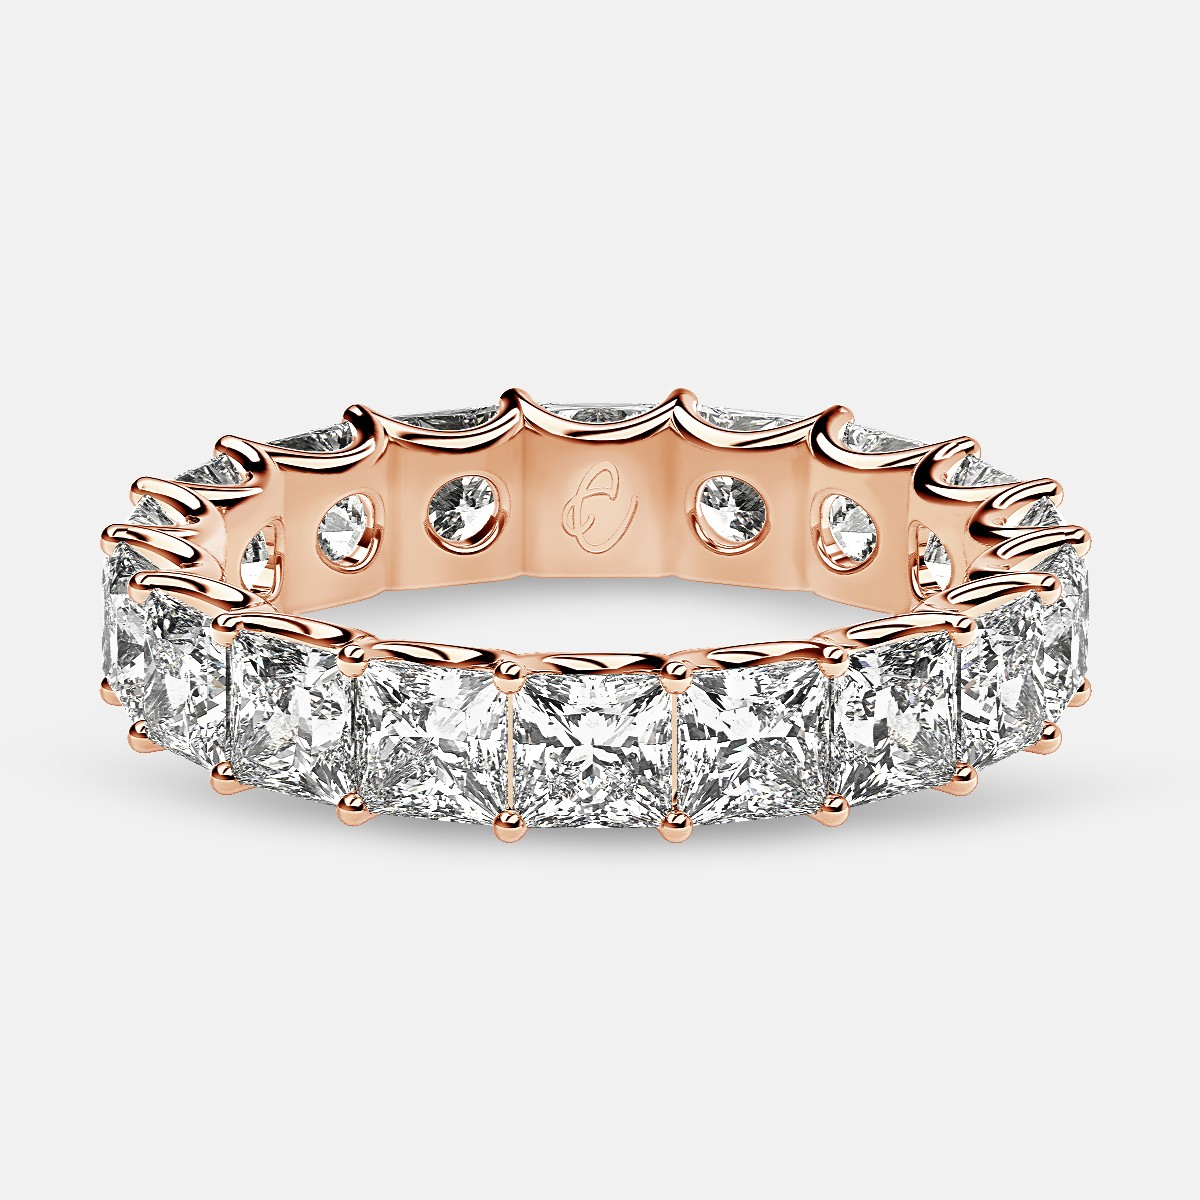 Eternity Ring with Arch Prong Set Princess Diamonds in 18k Rose Gold